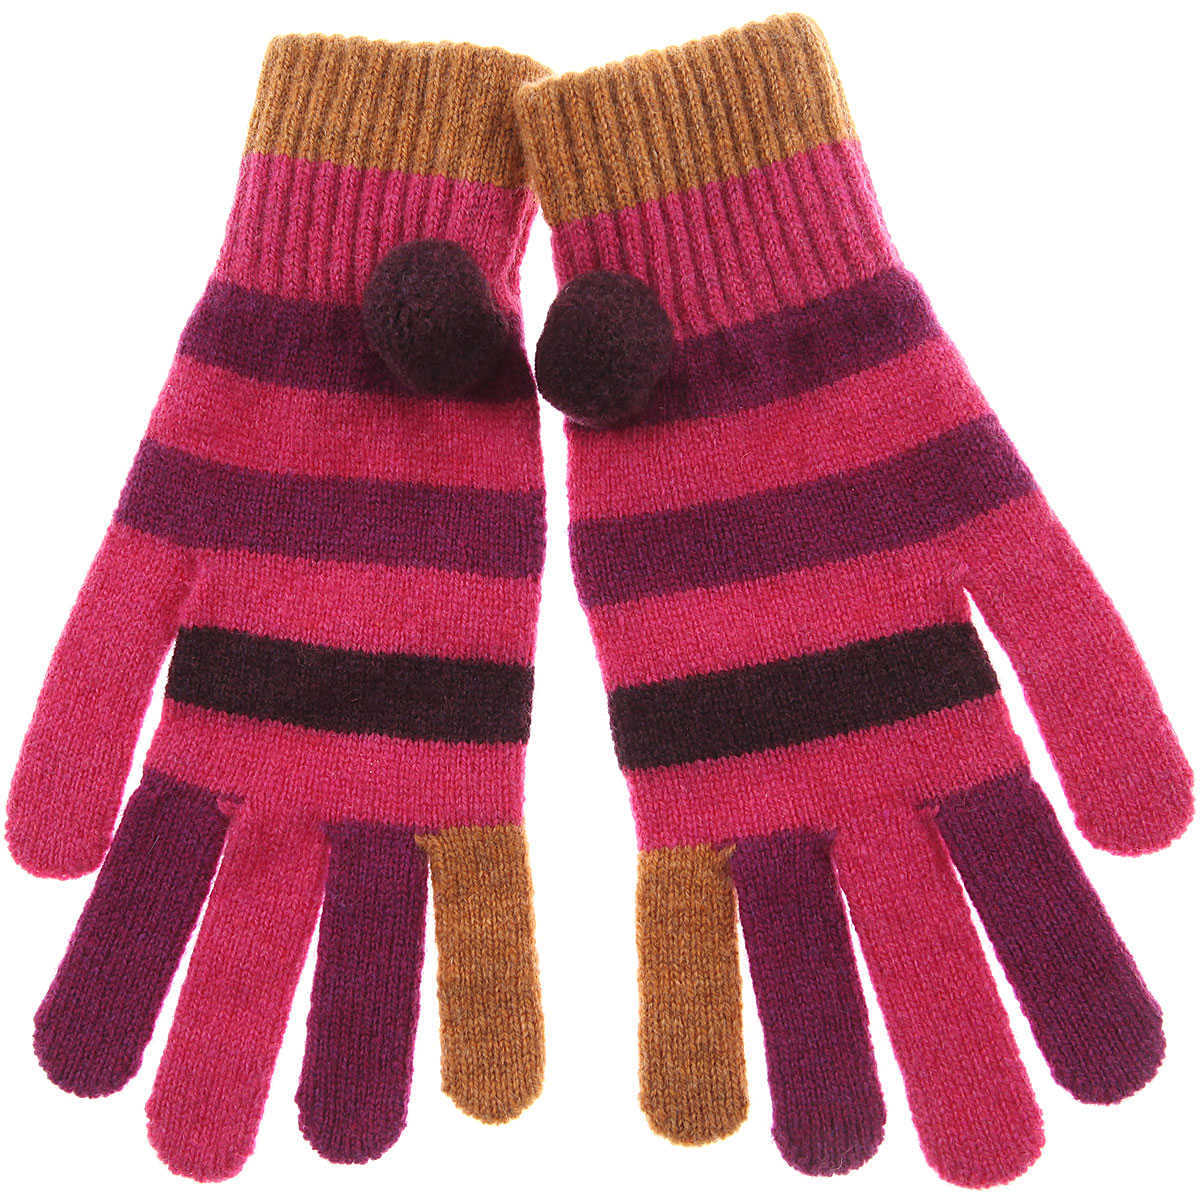 Paul Smith Gloves for Women On Sale Pink UK - GOOFASH